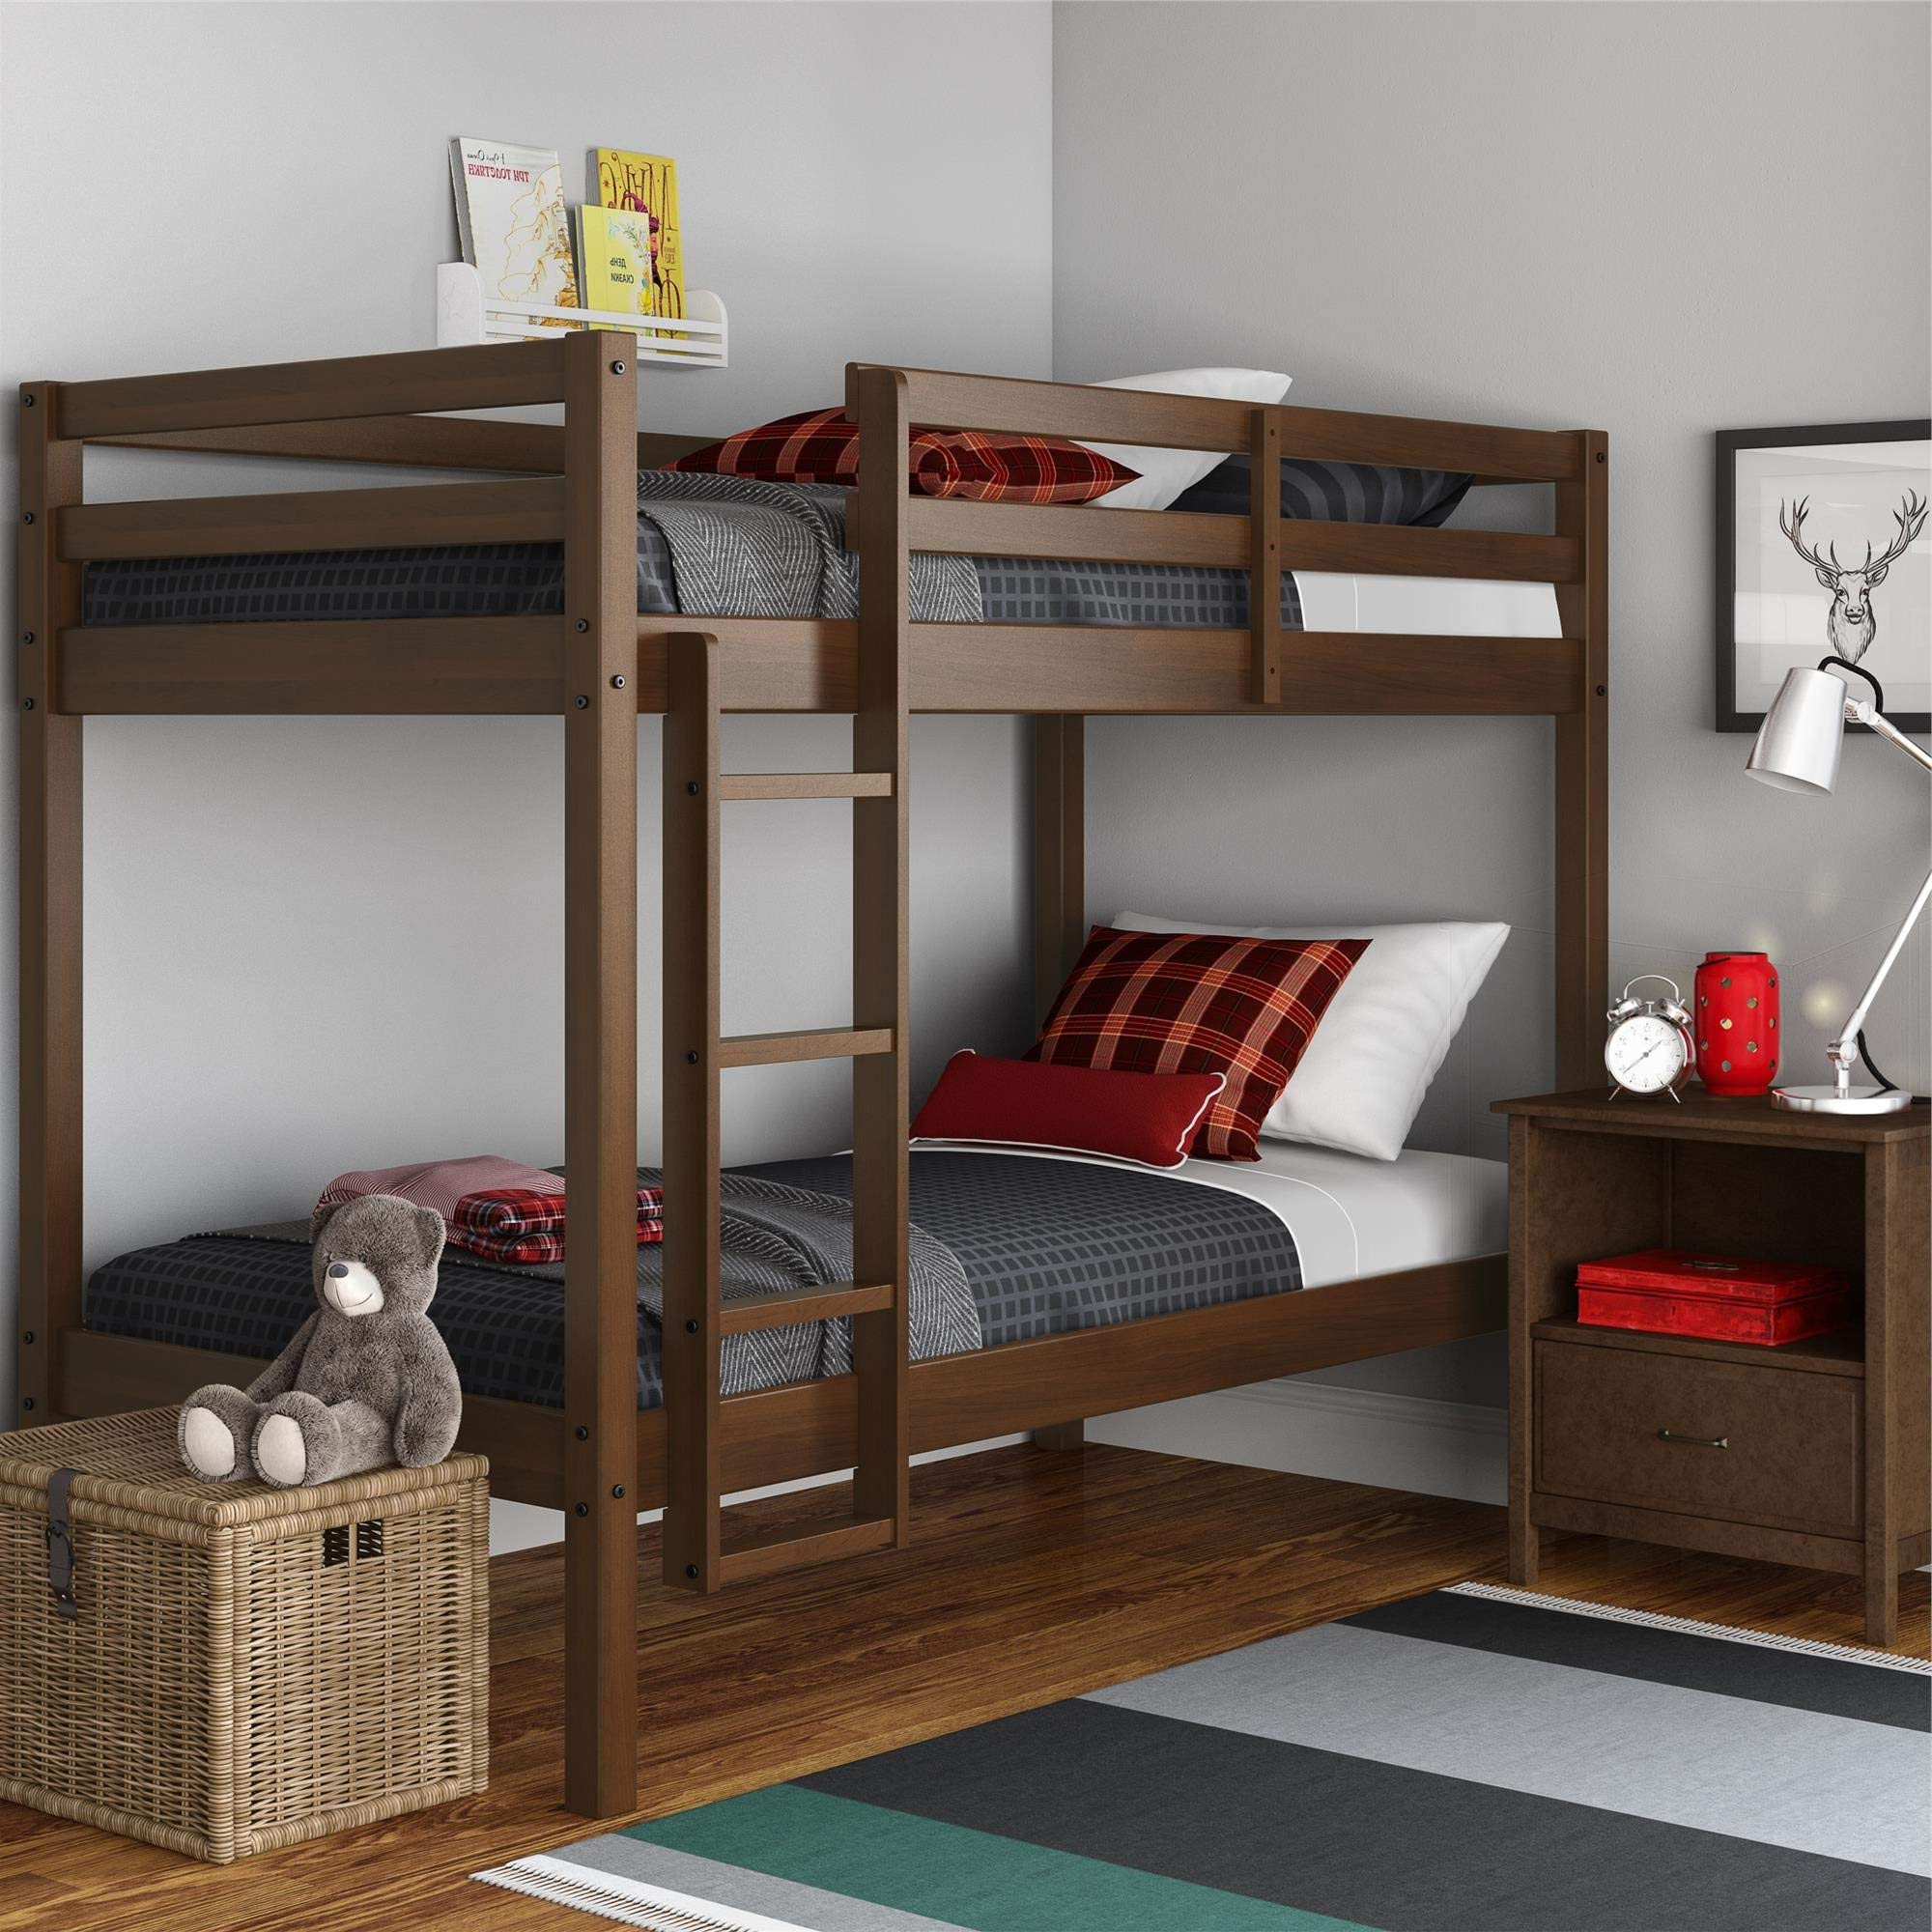 Dorel Living DA8378 Indiana Solid Wood Beds with Ladder and Guardrail, Mocha Twin Bunk